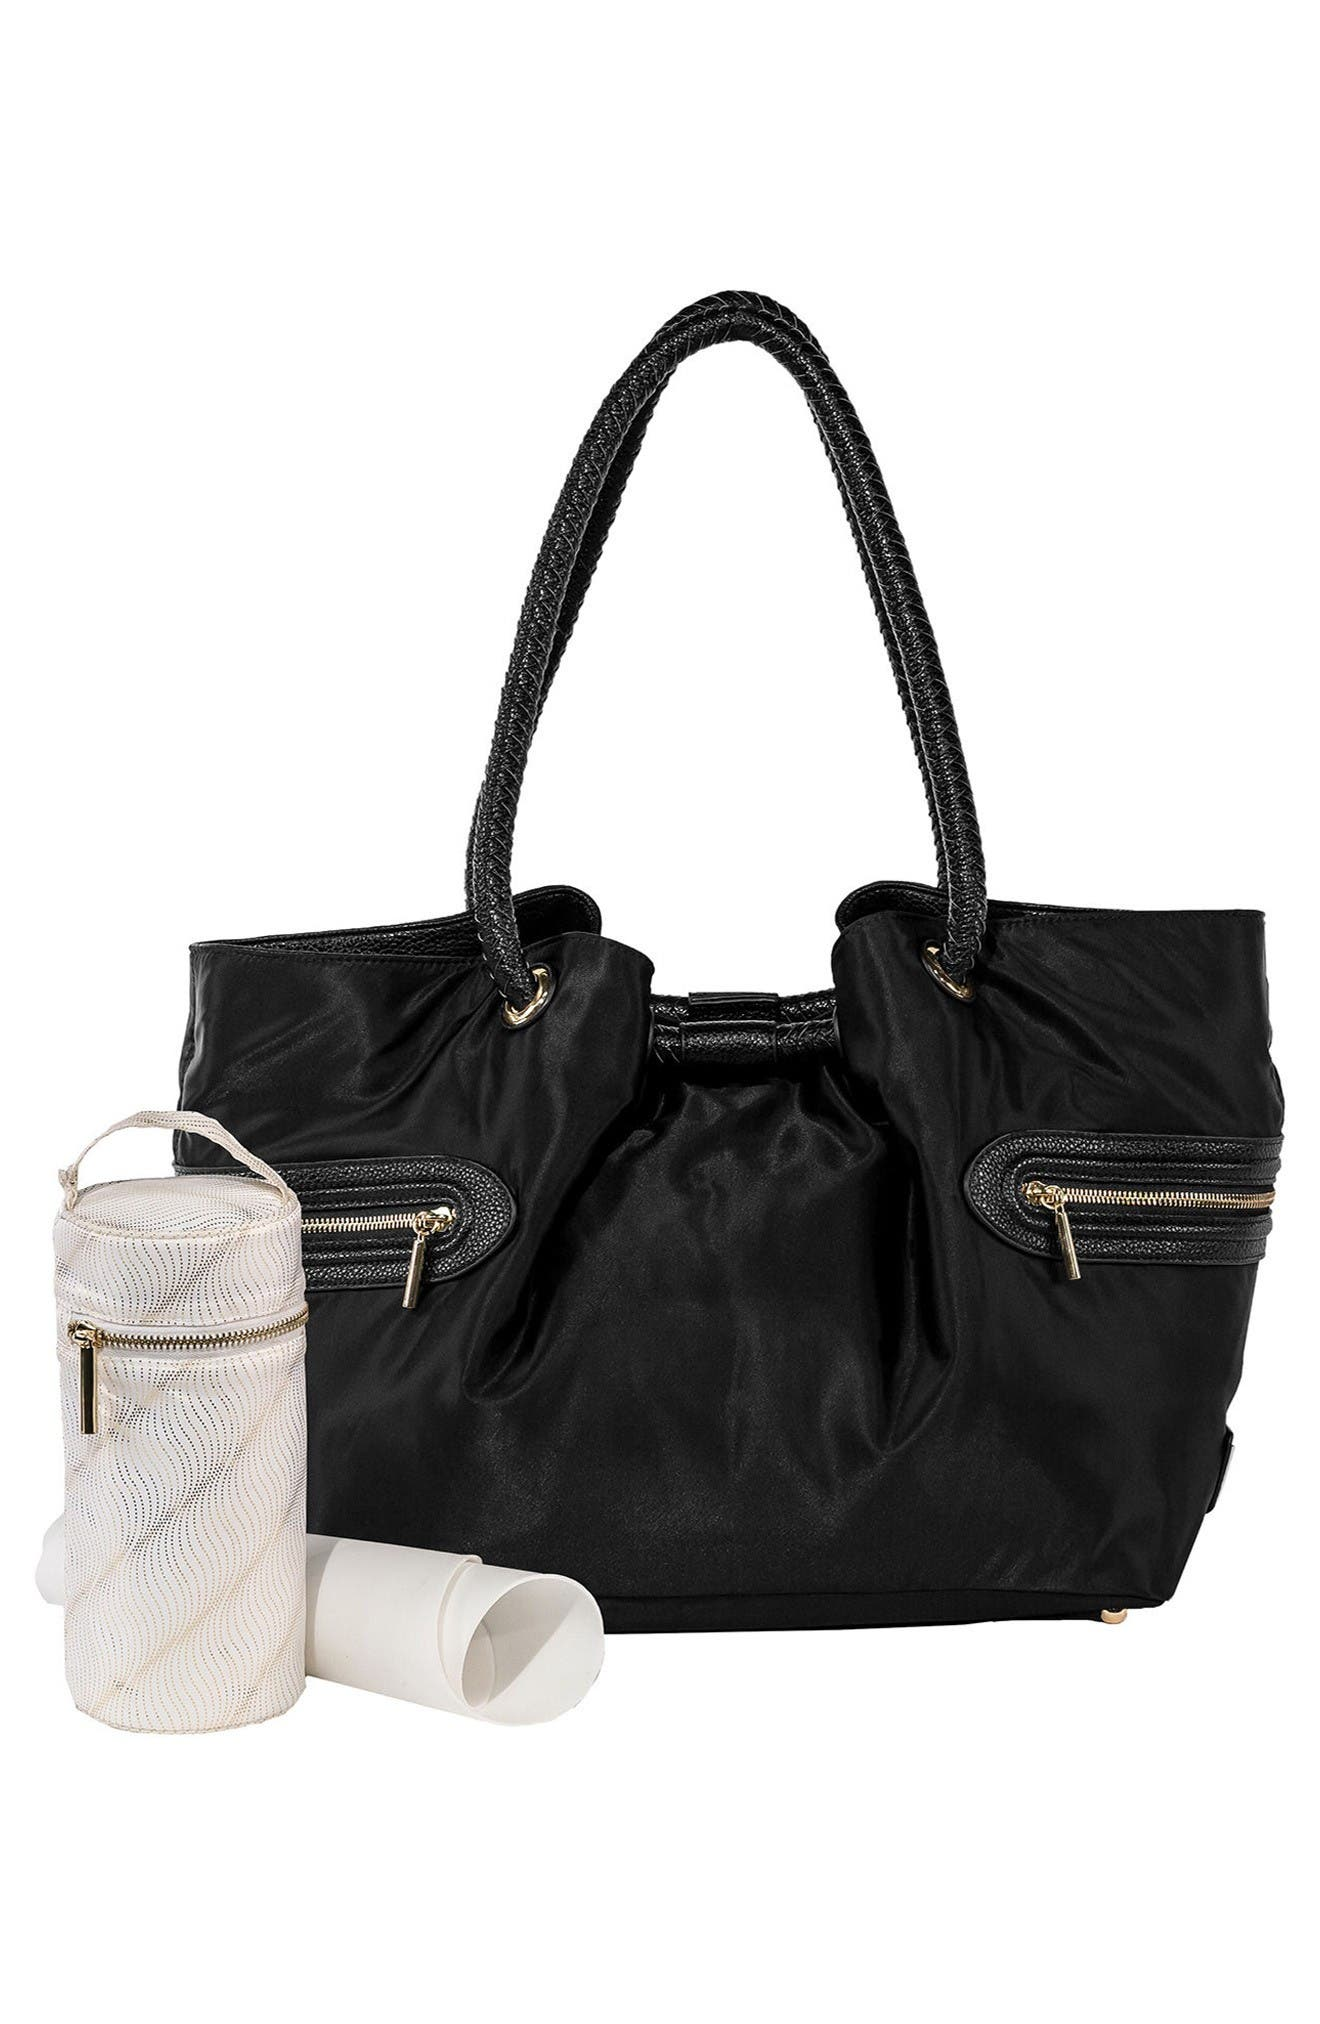 Addison Lane Diaper Bag,                             Alternate thumbnail 2, color,                             Black